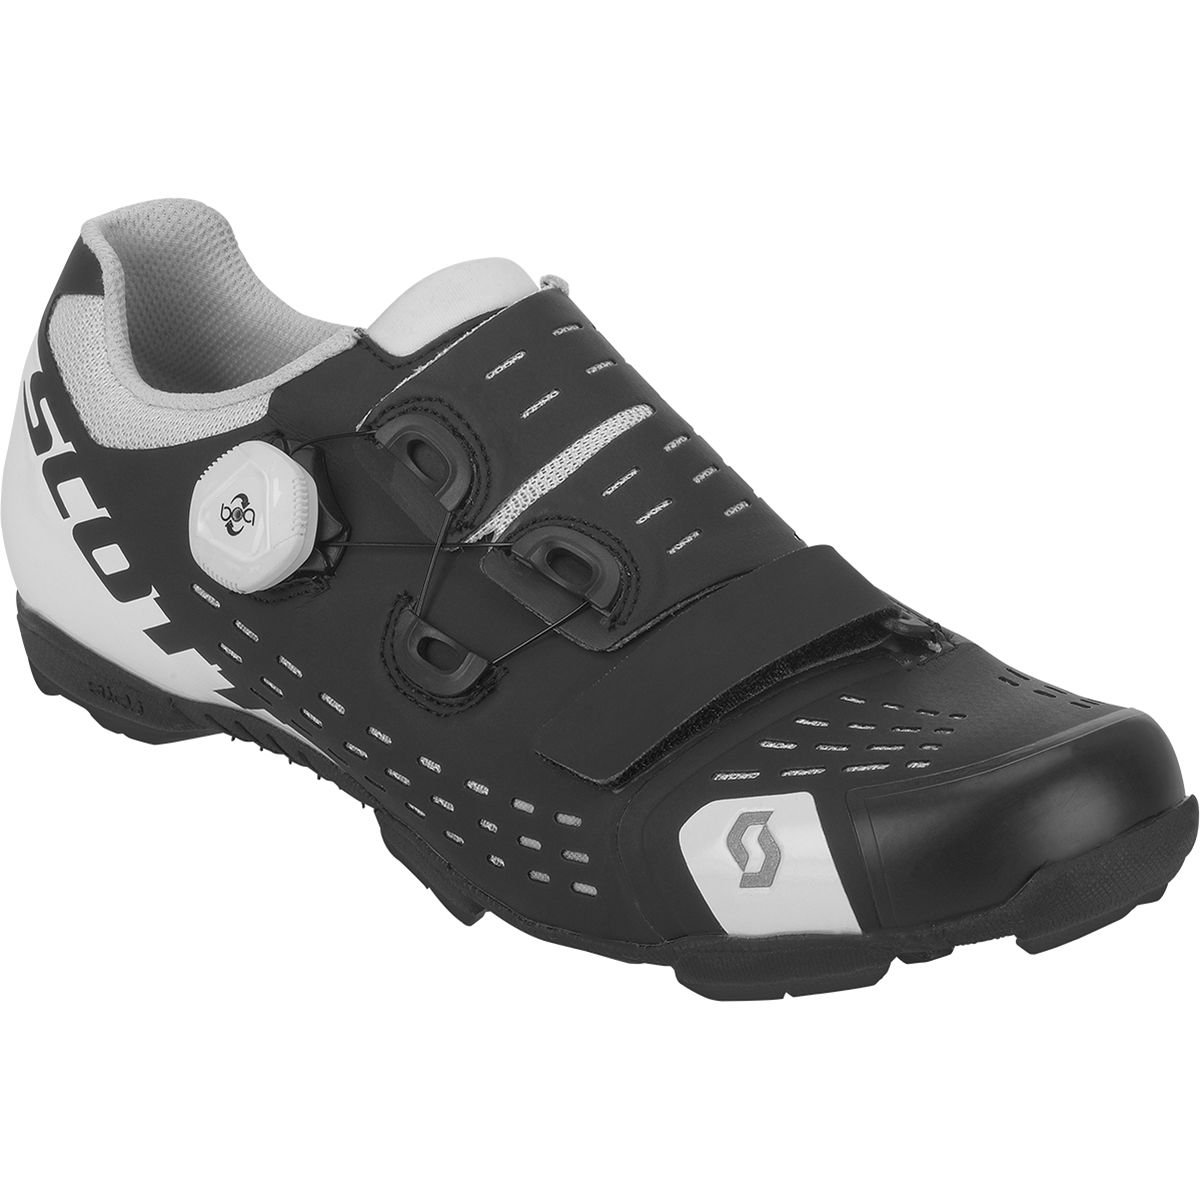 スコットMTB Premium Shoe 43 Matt Black/Gloss White B079GXHPT2